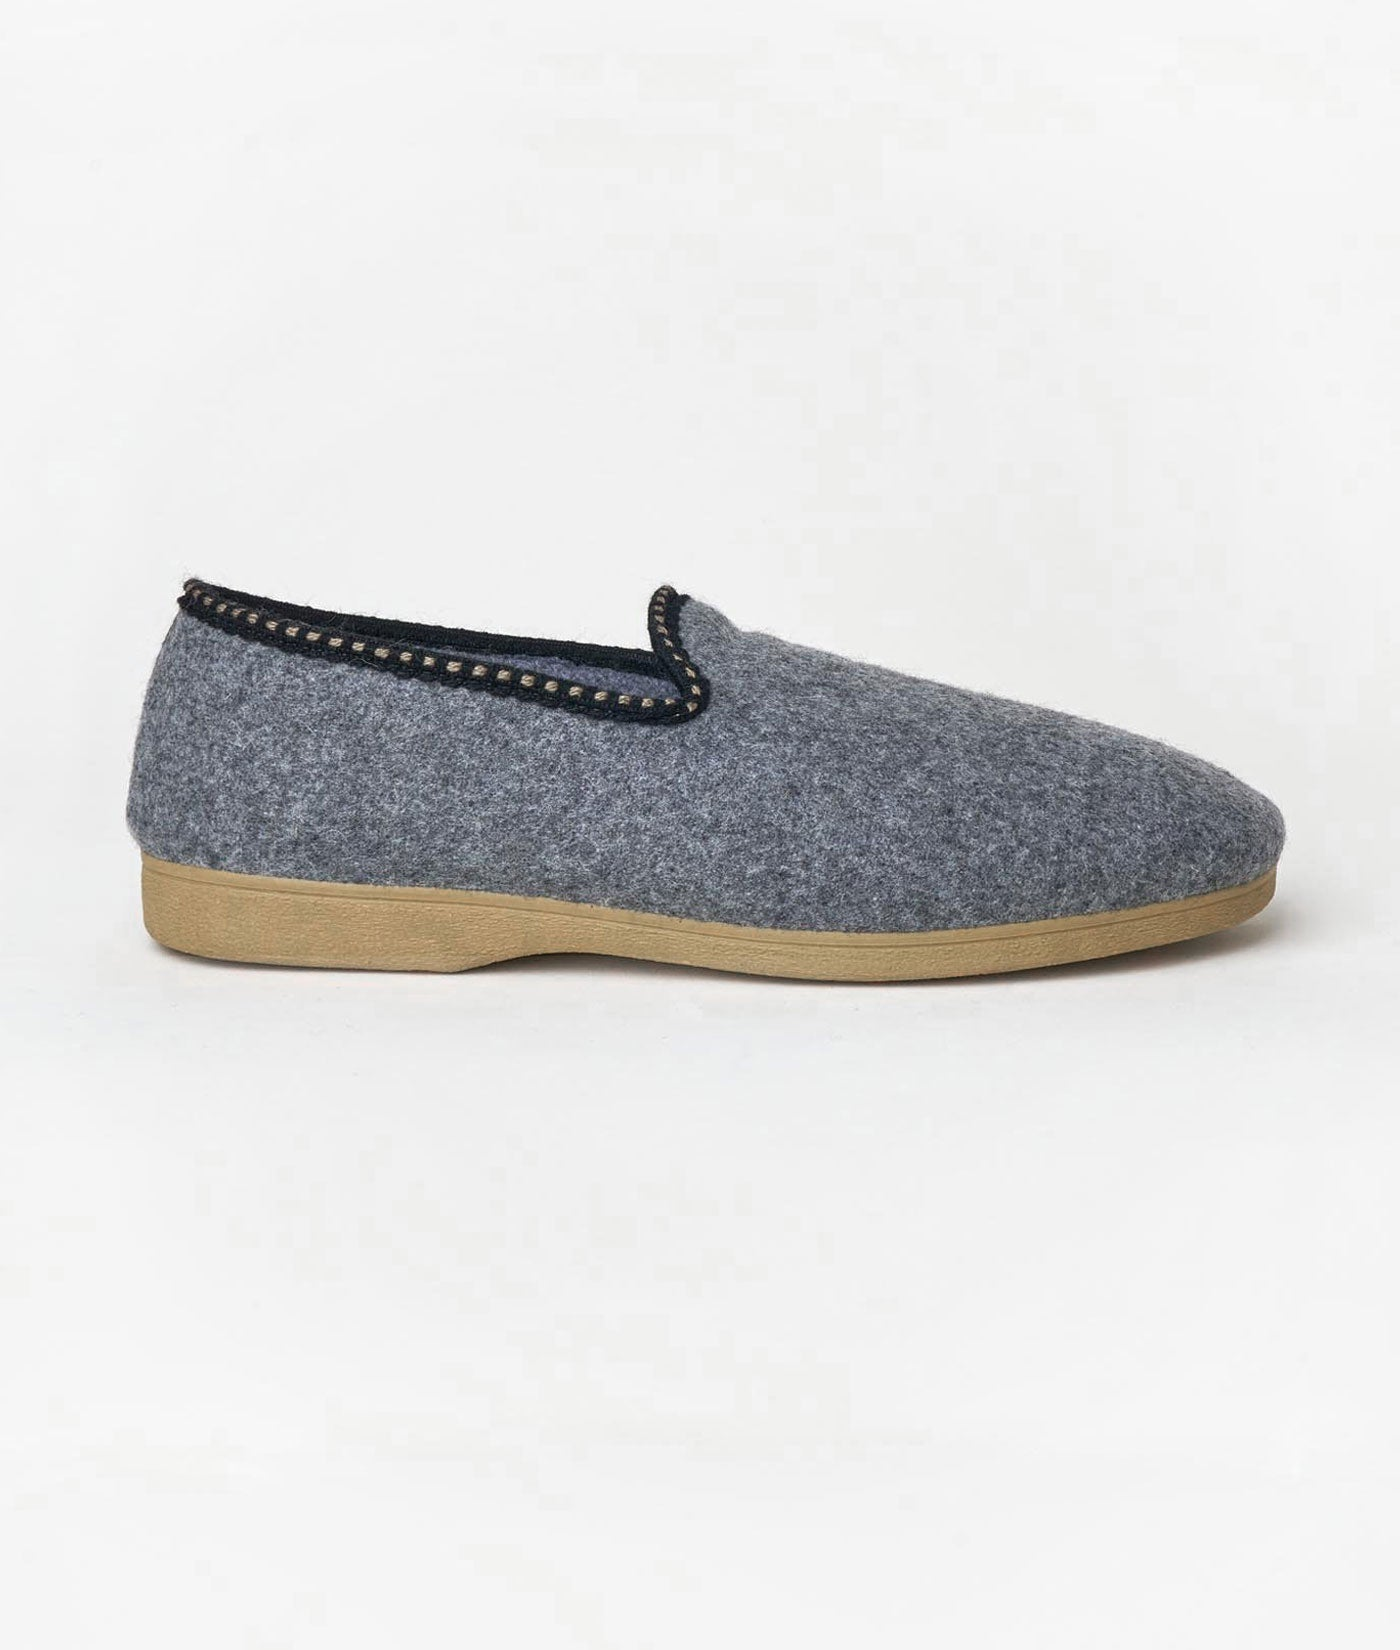 Industry of All Nations Cabrales Felted Wool Sustainable Slippers  Grey